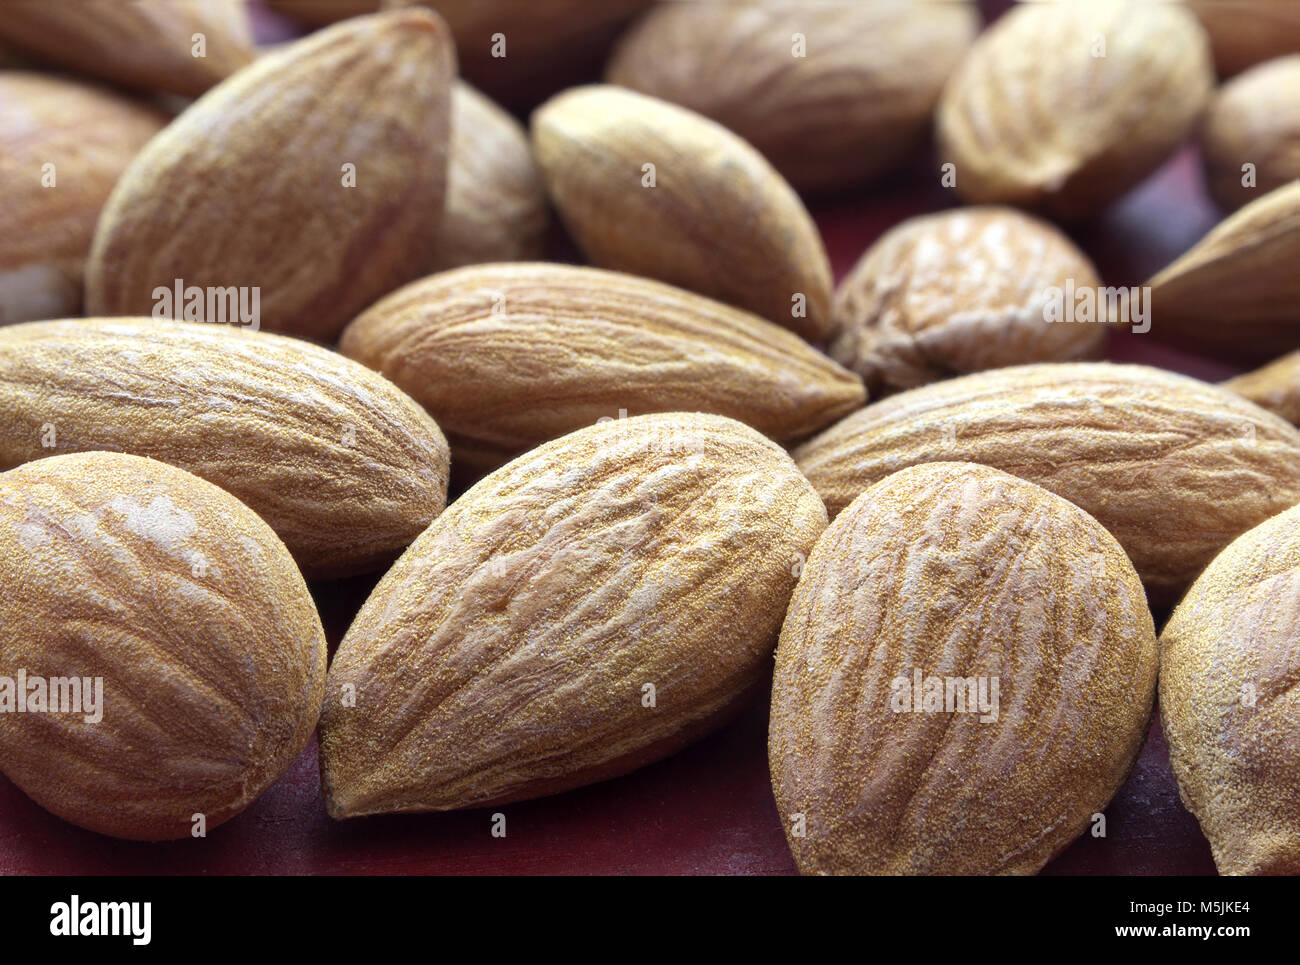 Dried apricot kernel fruit - extreme close up - Stock Image